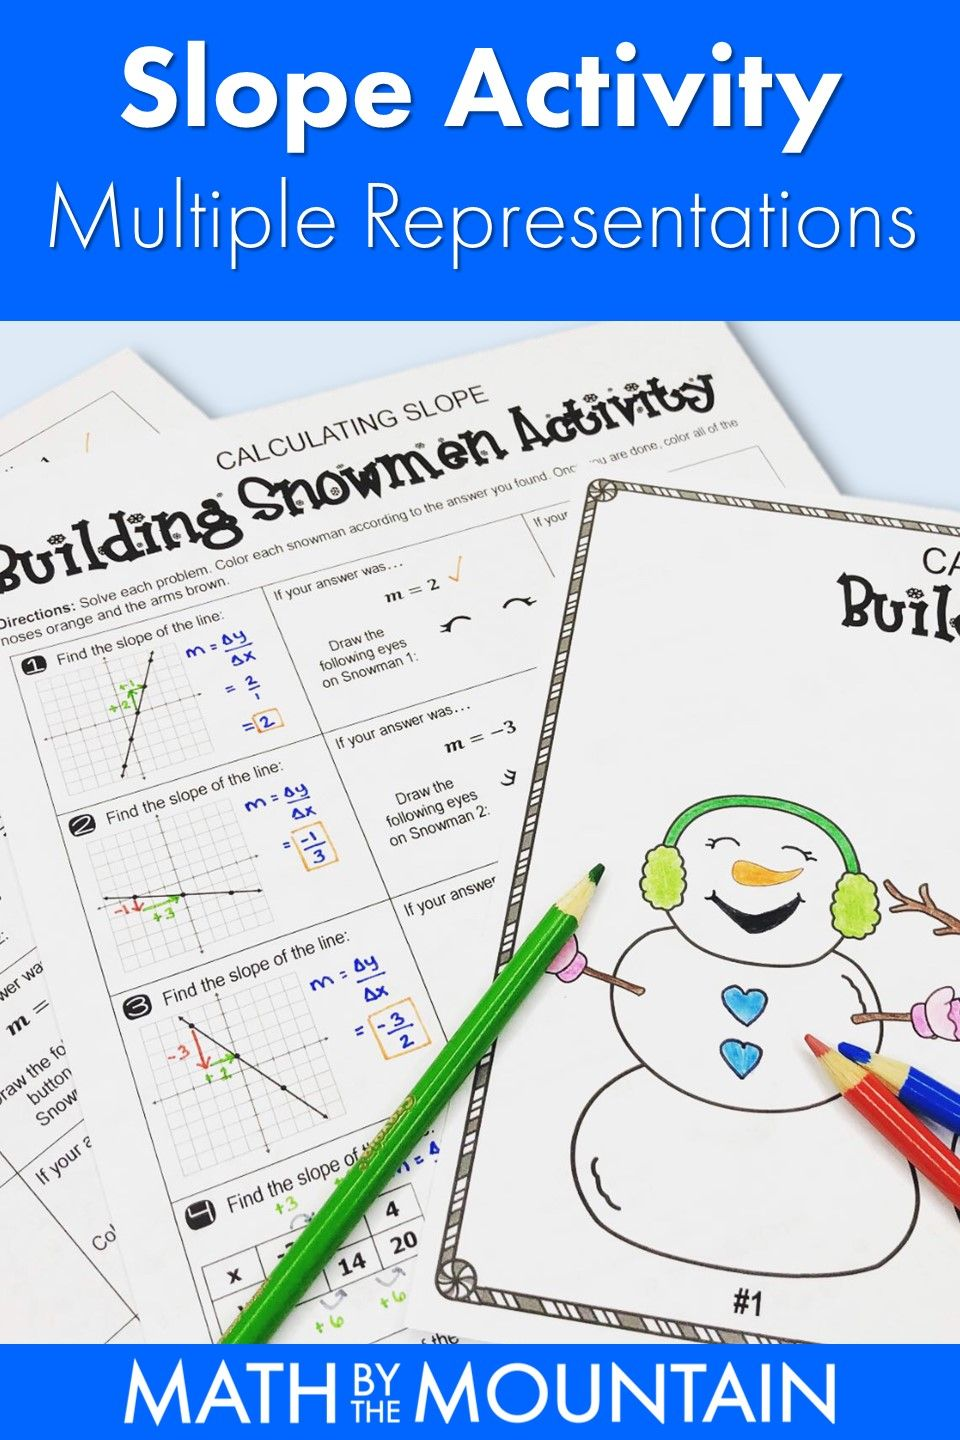 Calculating Slope Building Snowmen Coloring Activity Multiple Representations Color Activities Activities Math Activities